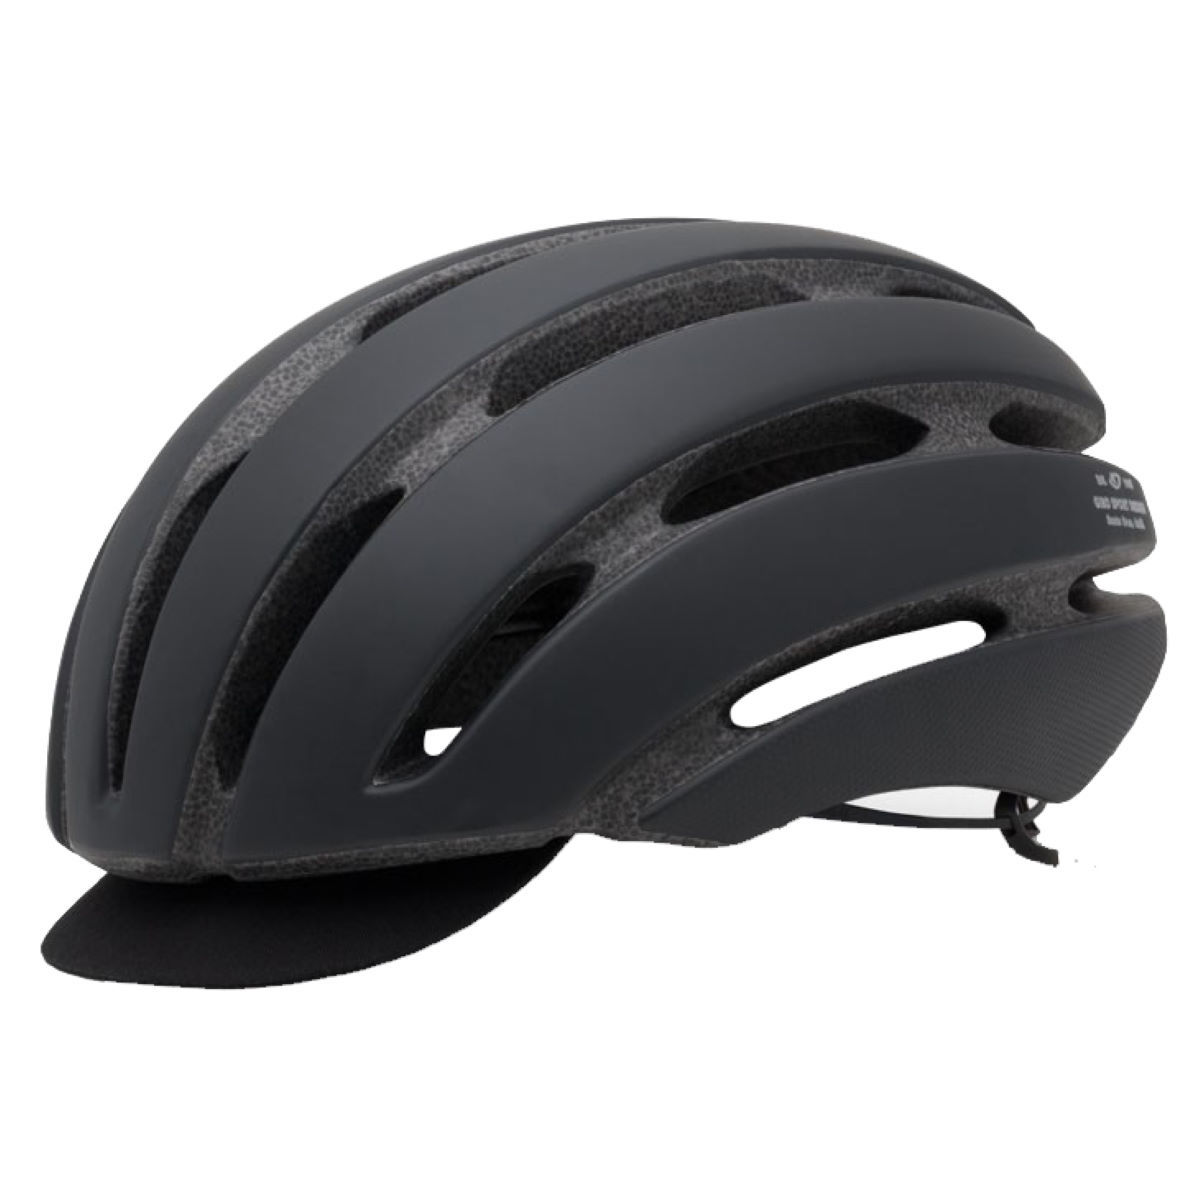 Giro Aspect Road Helmet - To Clear Black in Small only. (SORRY SOLD OUT at this price, others available)